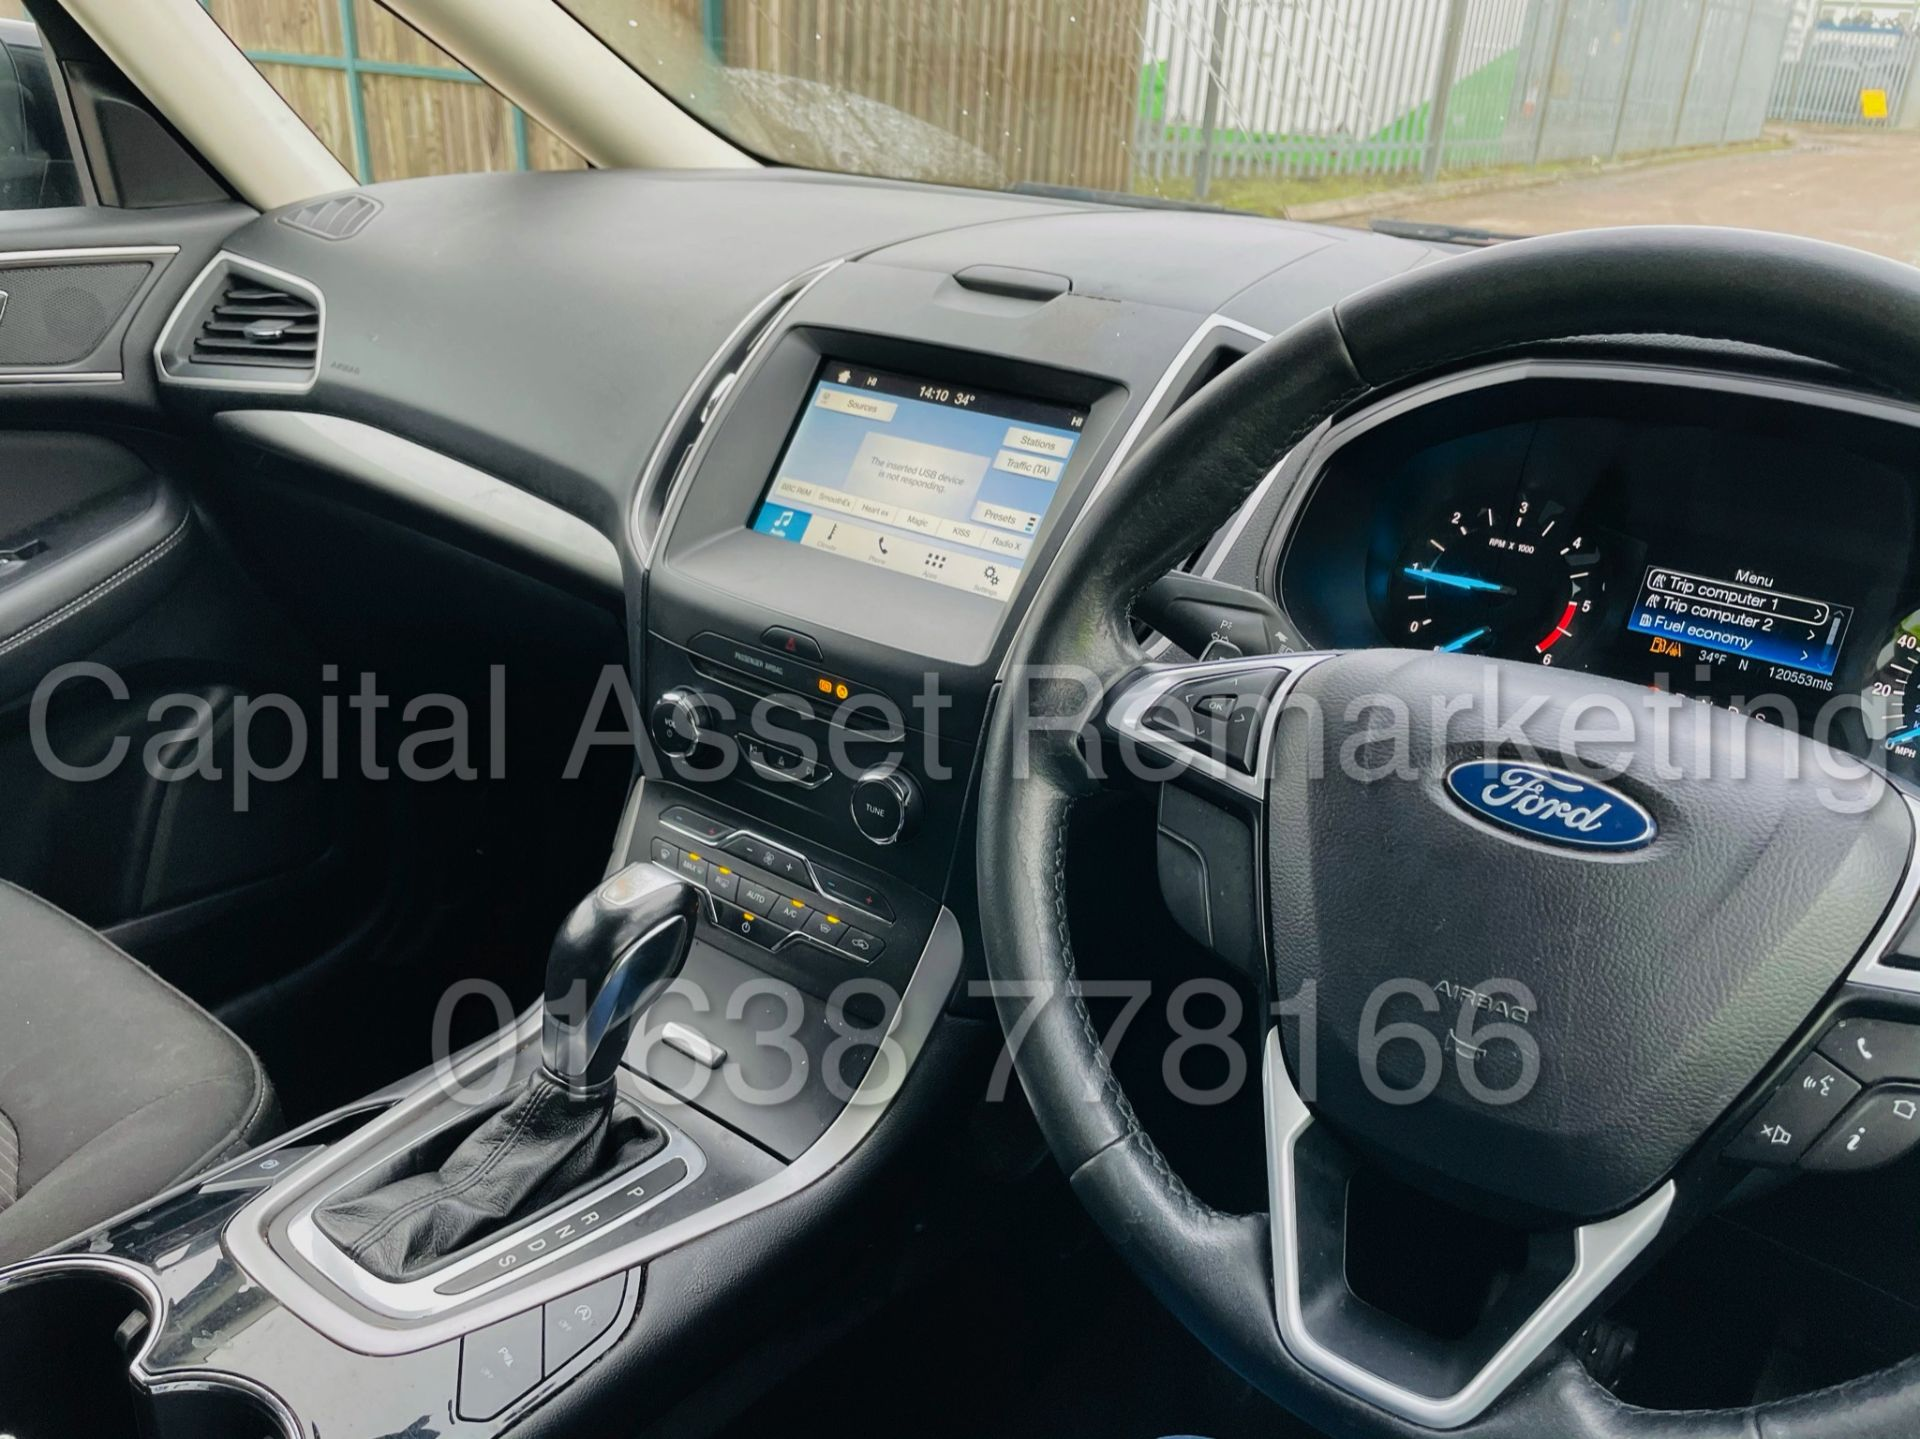 (On Sale) FORD GALAXY *ZETEC EDITION* 7 SEATER MPV (2017 - EURO 6) '2.0 TDCI - AUTO' (1 OWNER) - Image 38 of 48